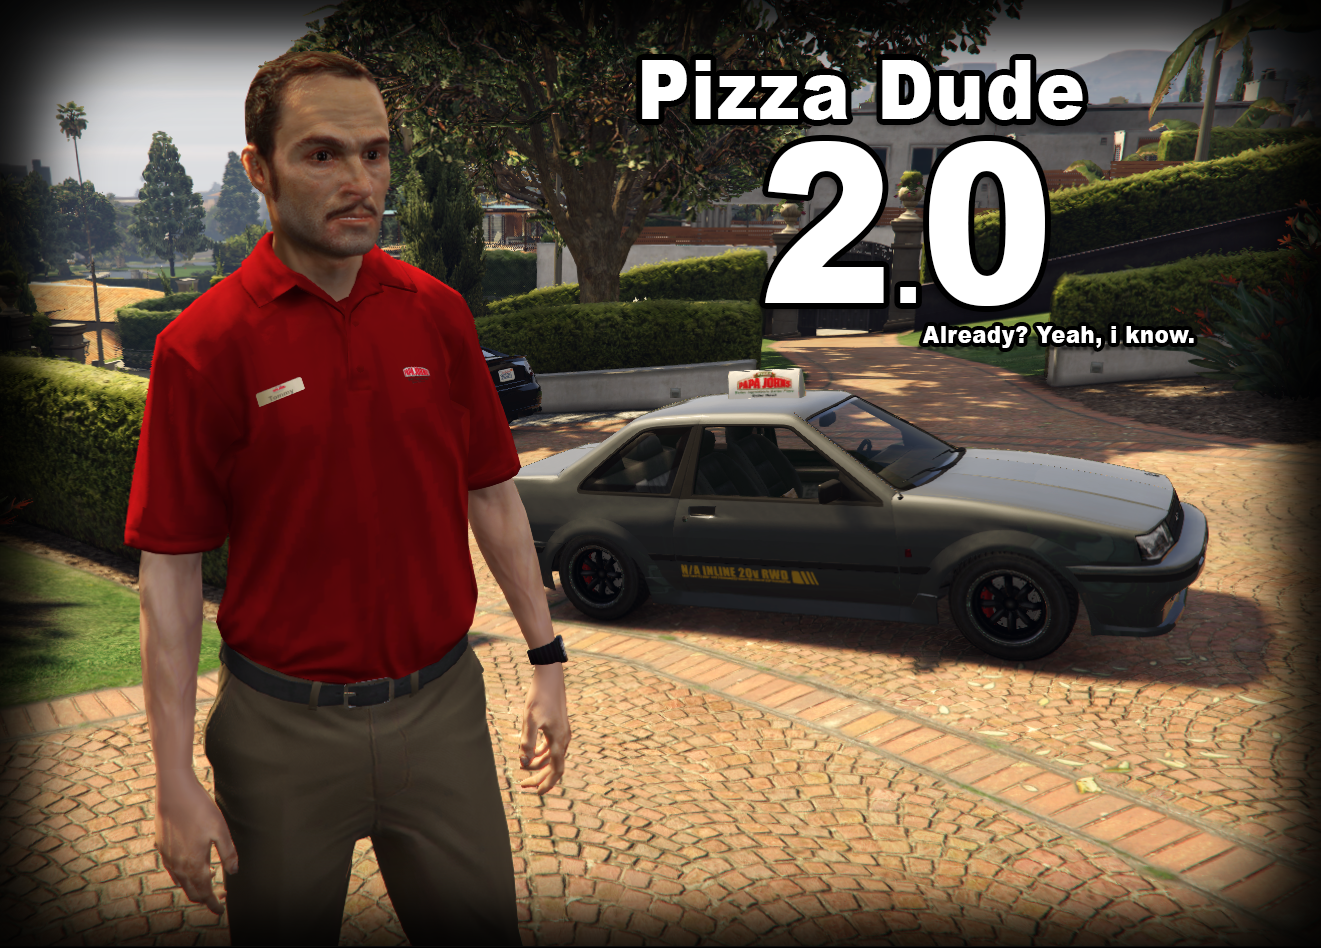 Pizza delivery dude